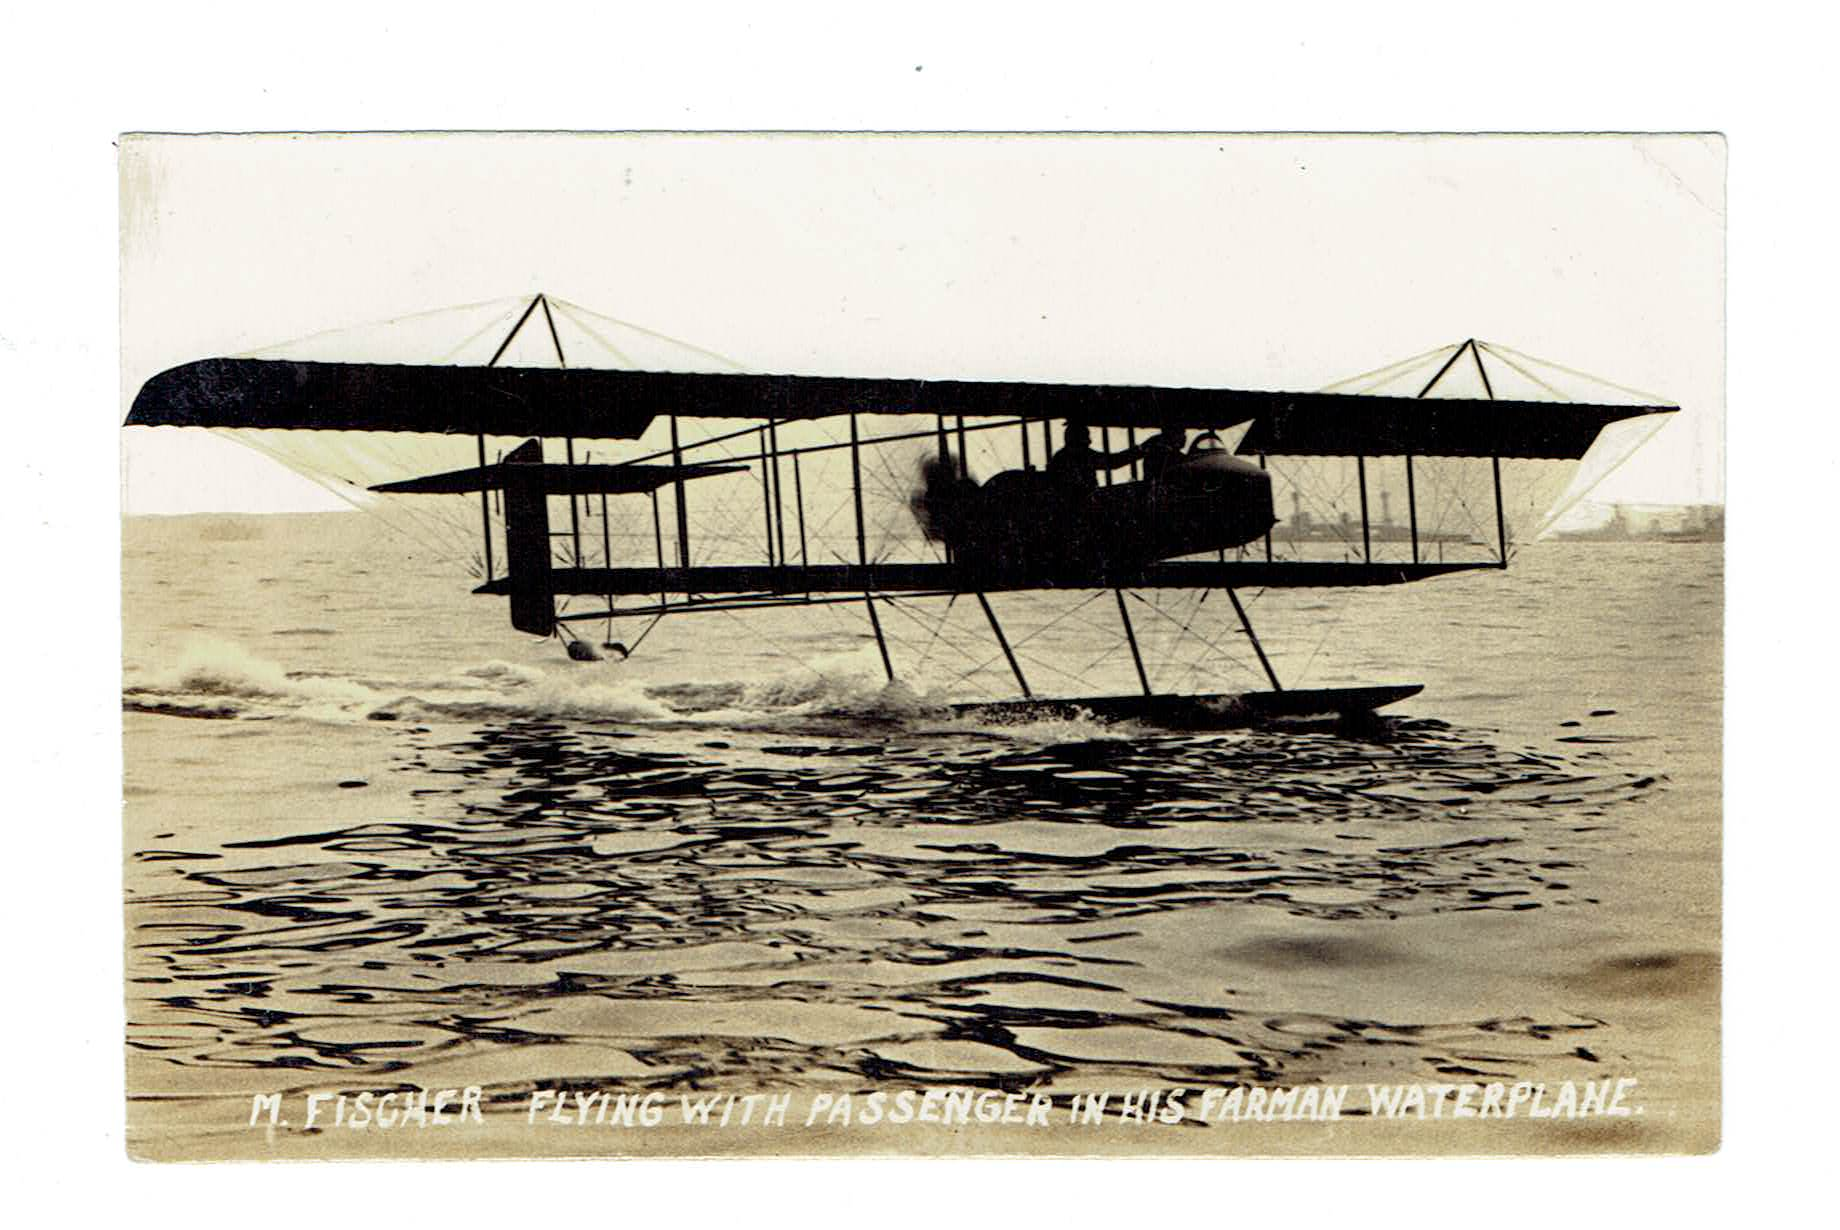 Aircraft Float Plane On Water. 1912. RPPC Postcard. Piloted By M. Fischer